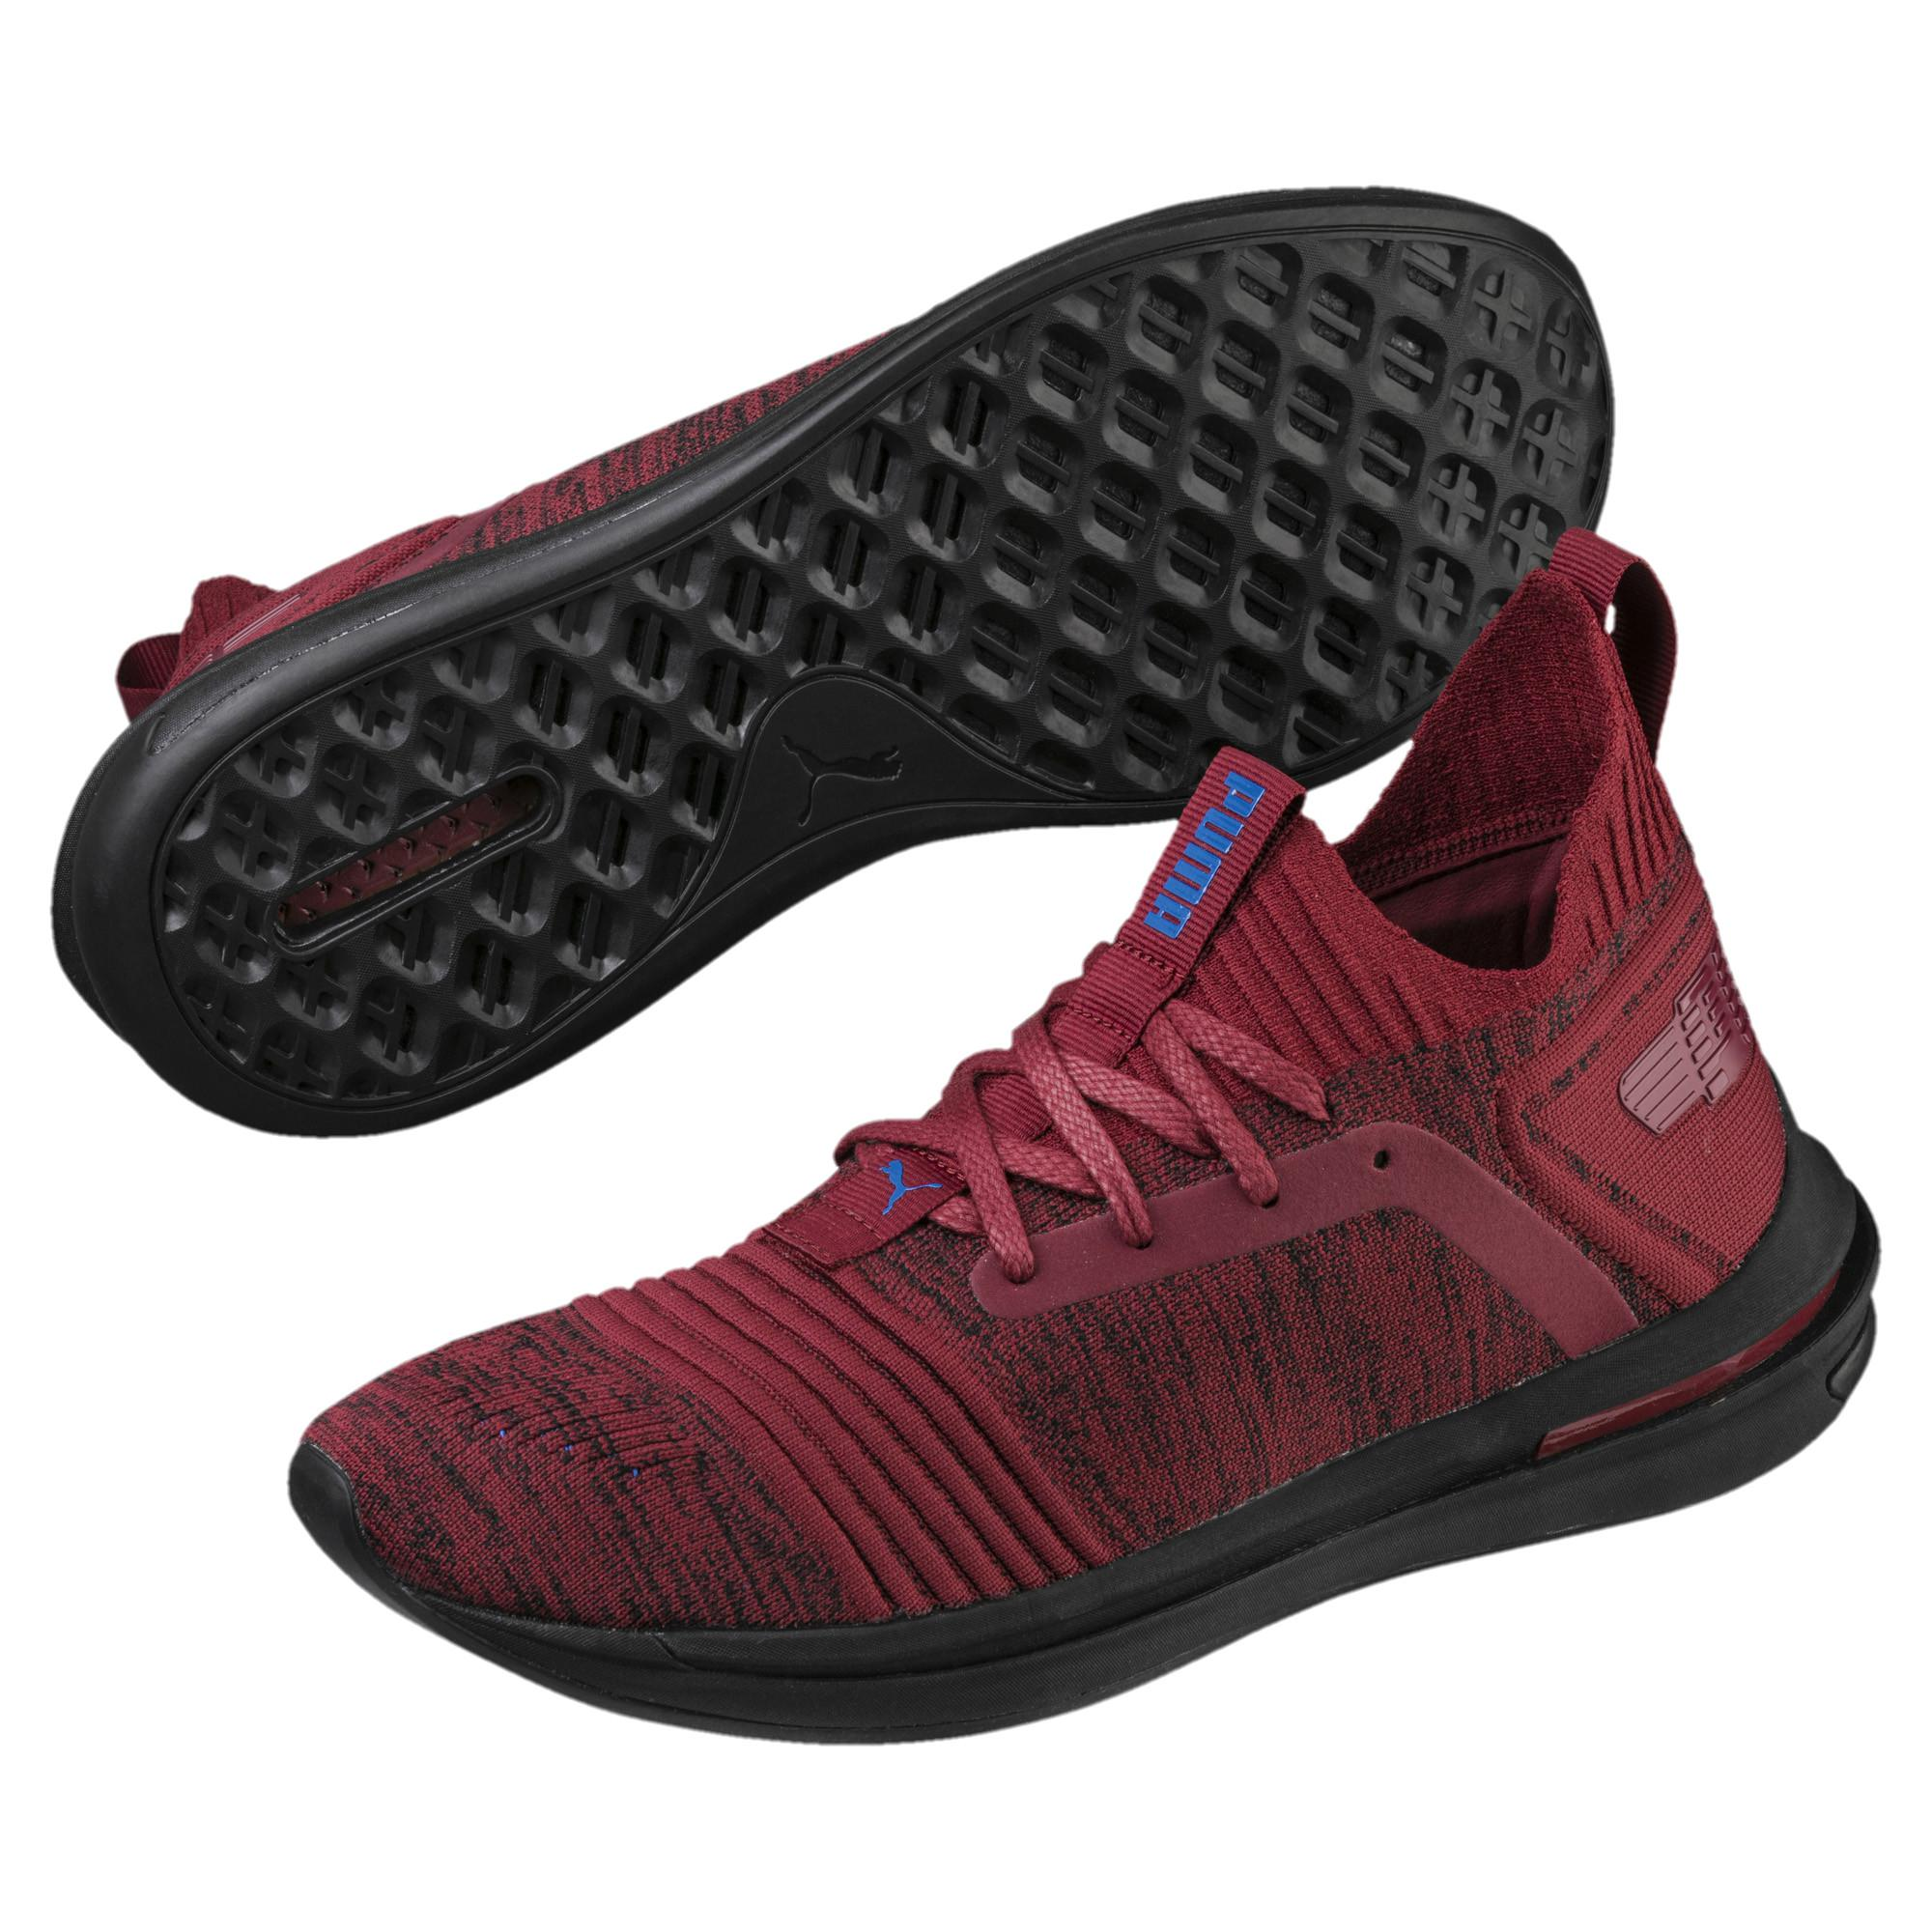 PUMA - Red Ignite Limitless Sr Evoknit Men s Sneakers for Men - Lyst. View  fullscreen 9745ee2ff